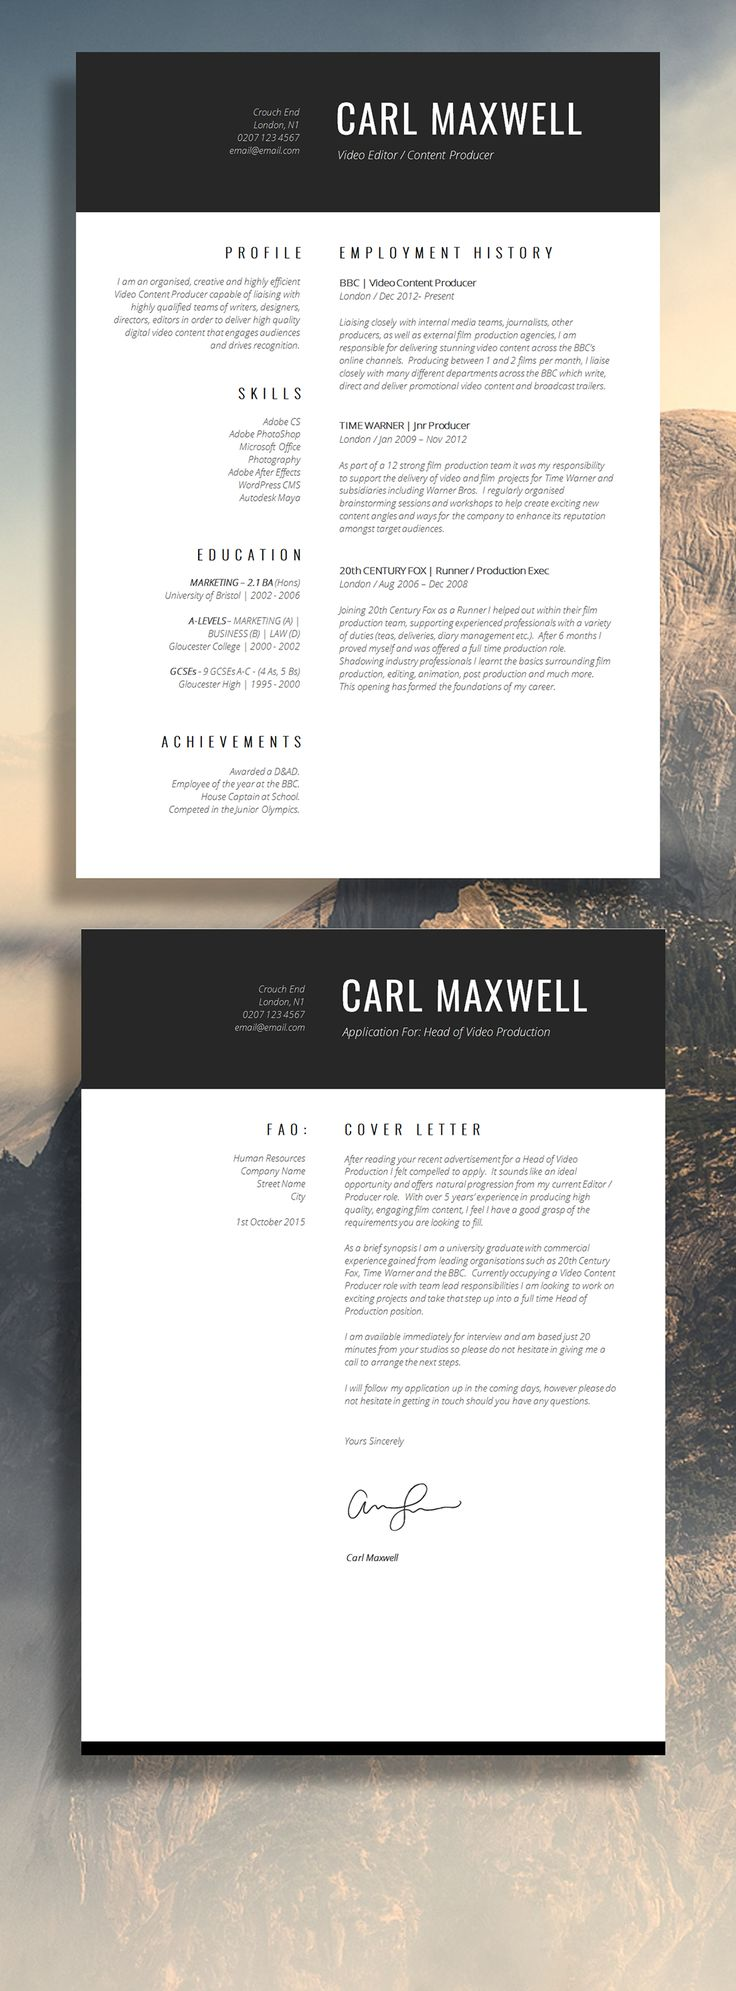 best ideas about writing a cv cv infographic professional resume template cv template resume advice cover letter word mac or pc instant digital quot fair quot